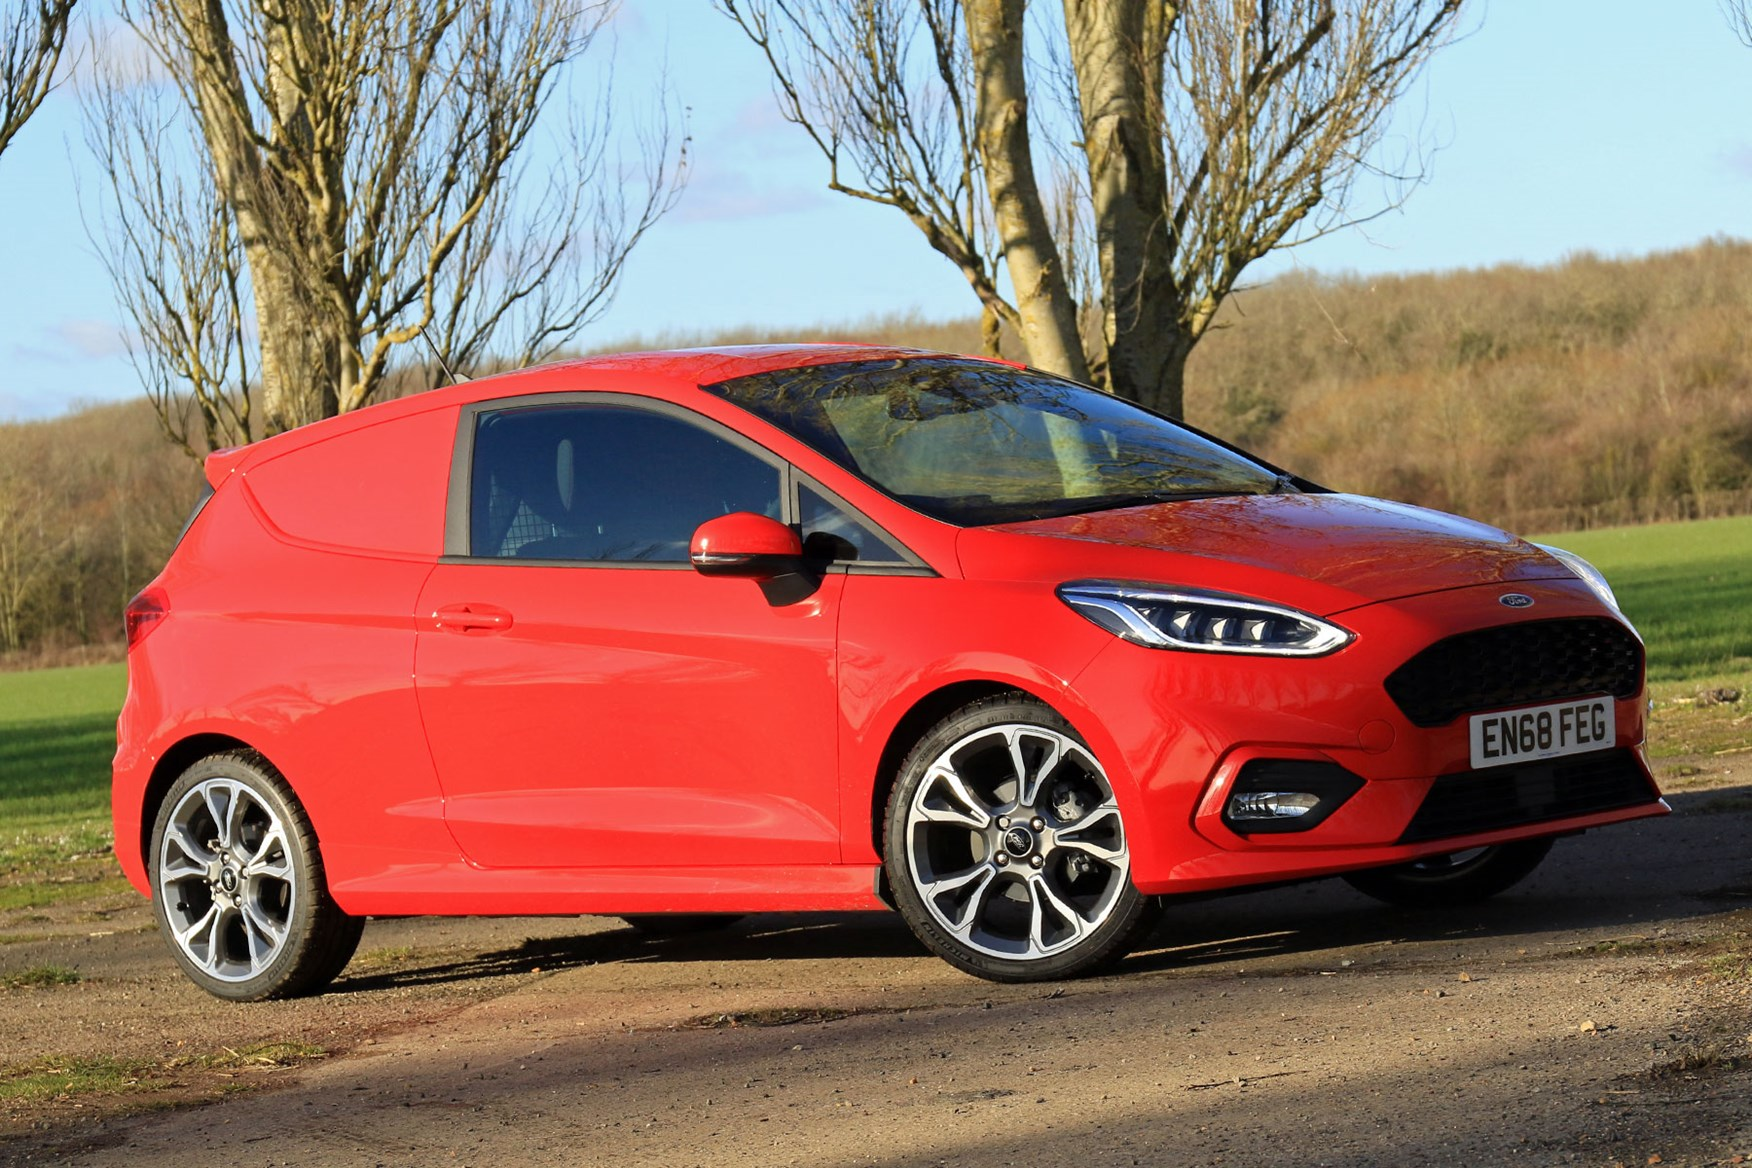 Ford Fiesta Sport Van review - front view, red